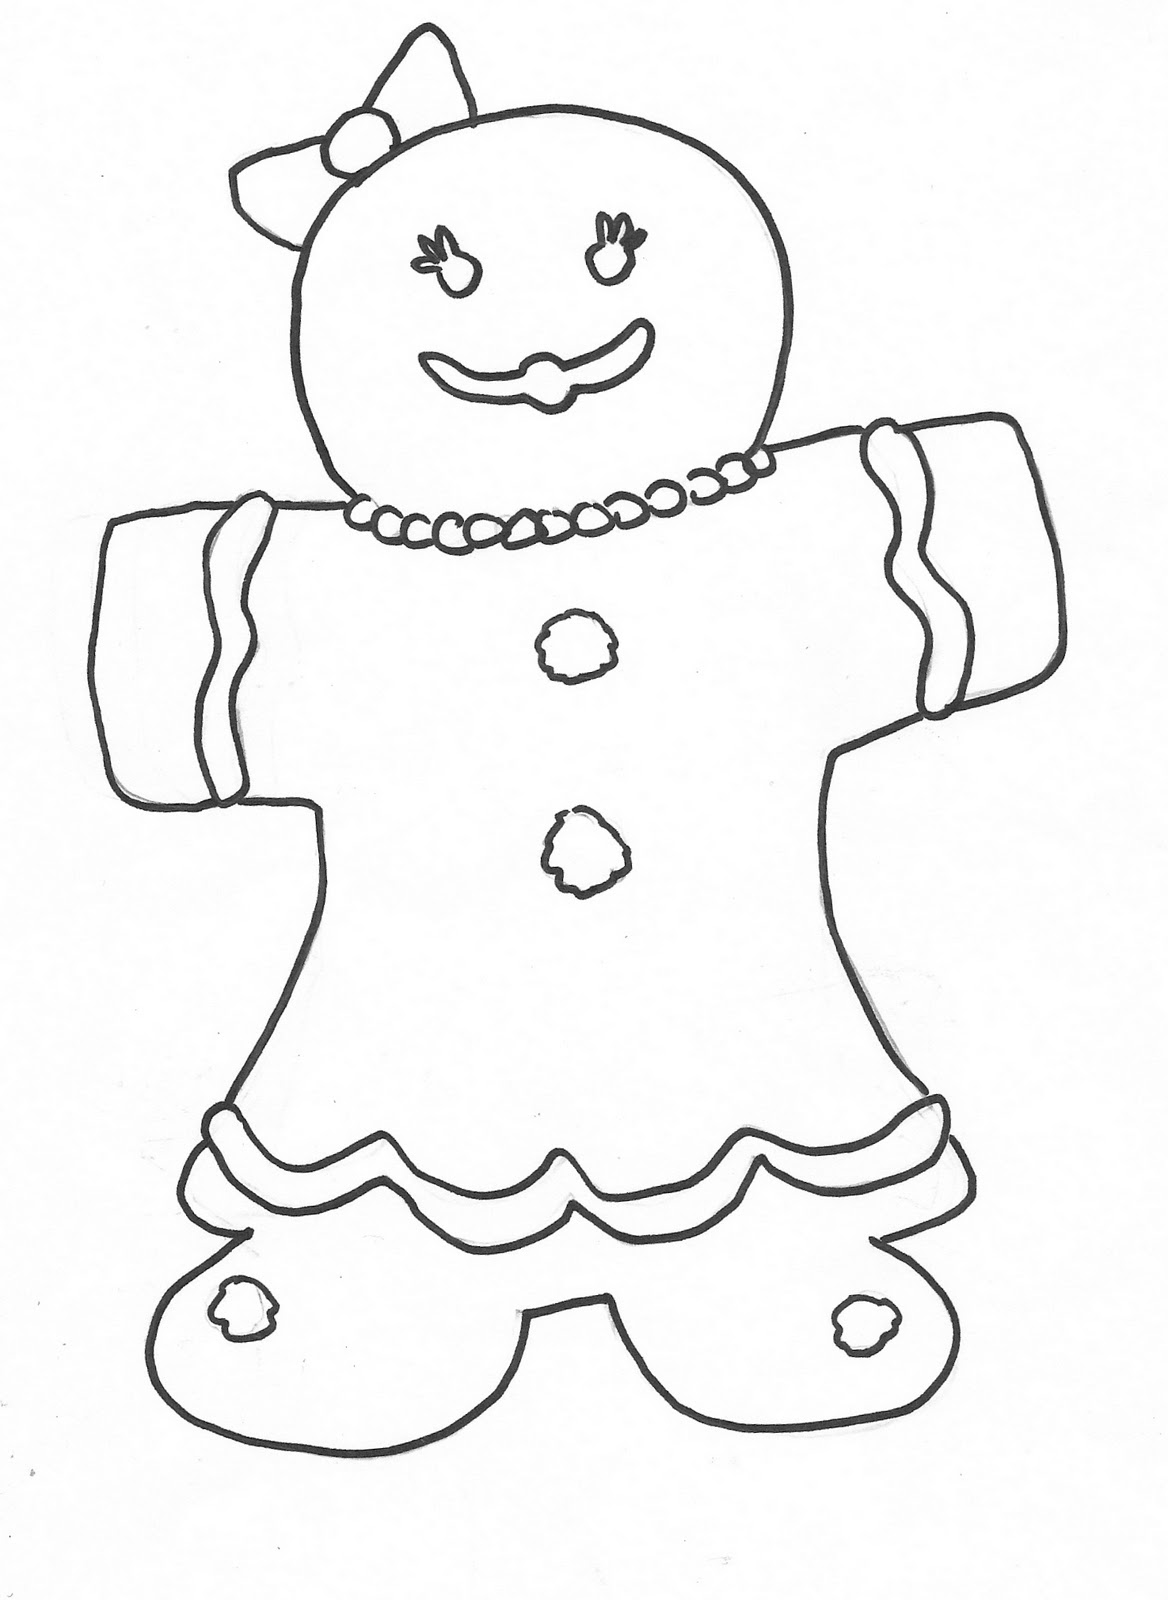 gingerbread man coloring pages printable 15 gingerbread man templates colouring pages free coloring printable pages gingerbread man